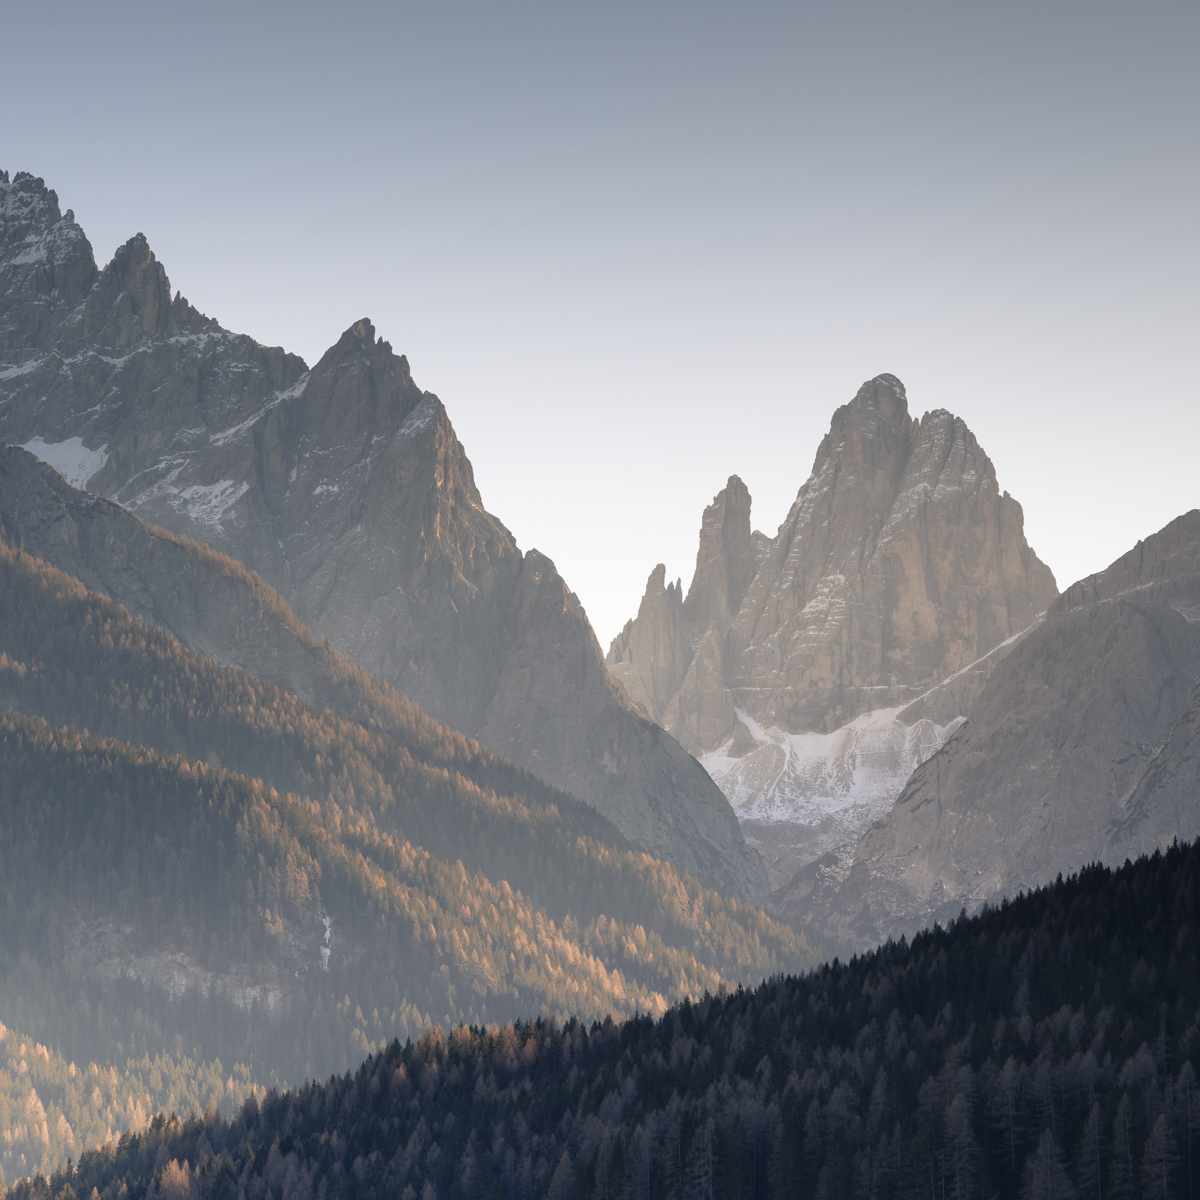 Late afternoon Sun dipping below the sharp peaks often provides great photographic opportunities.